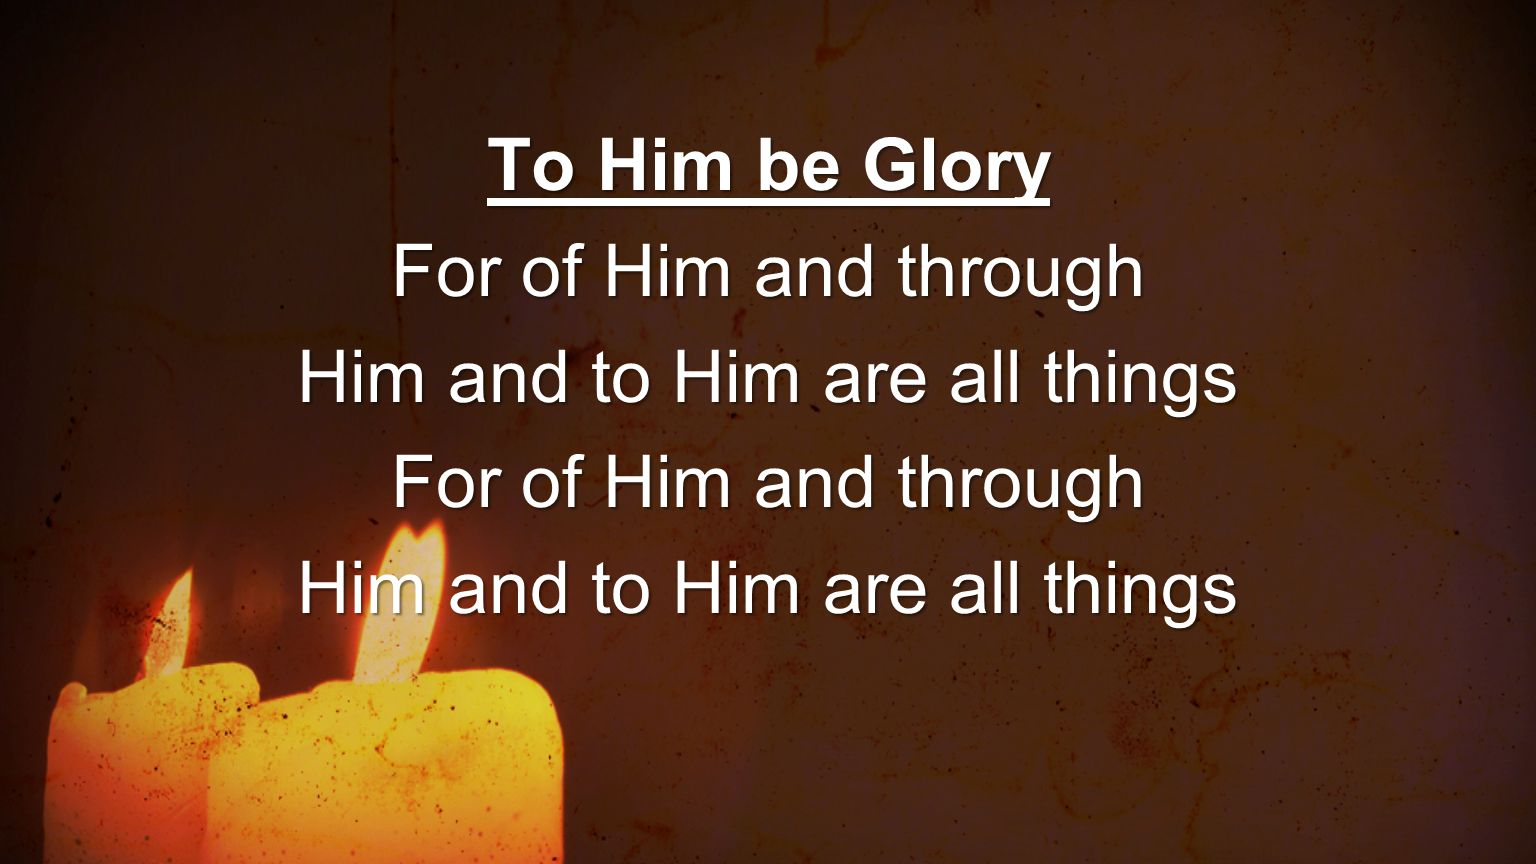 To Him be Glory For of Him and through Him and to Him are all things